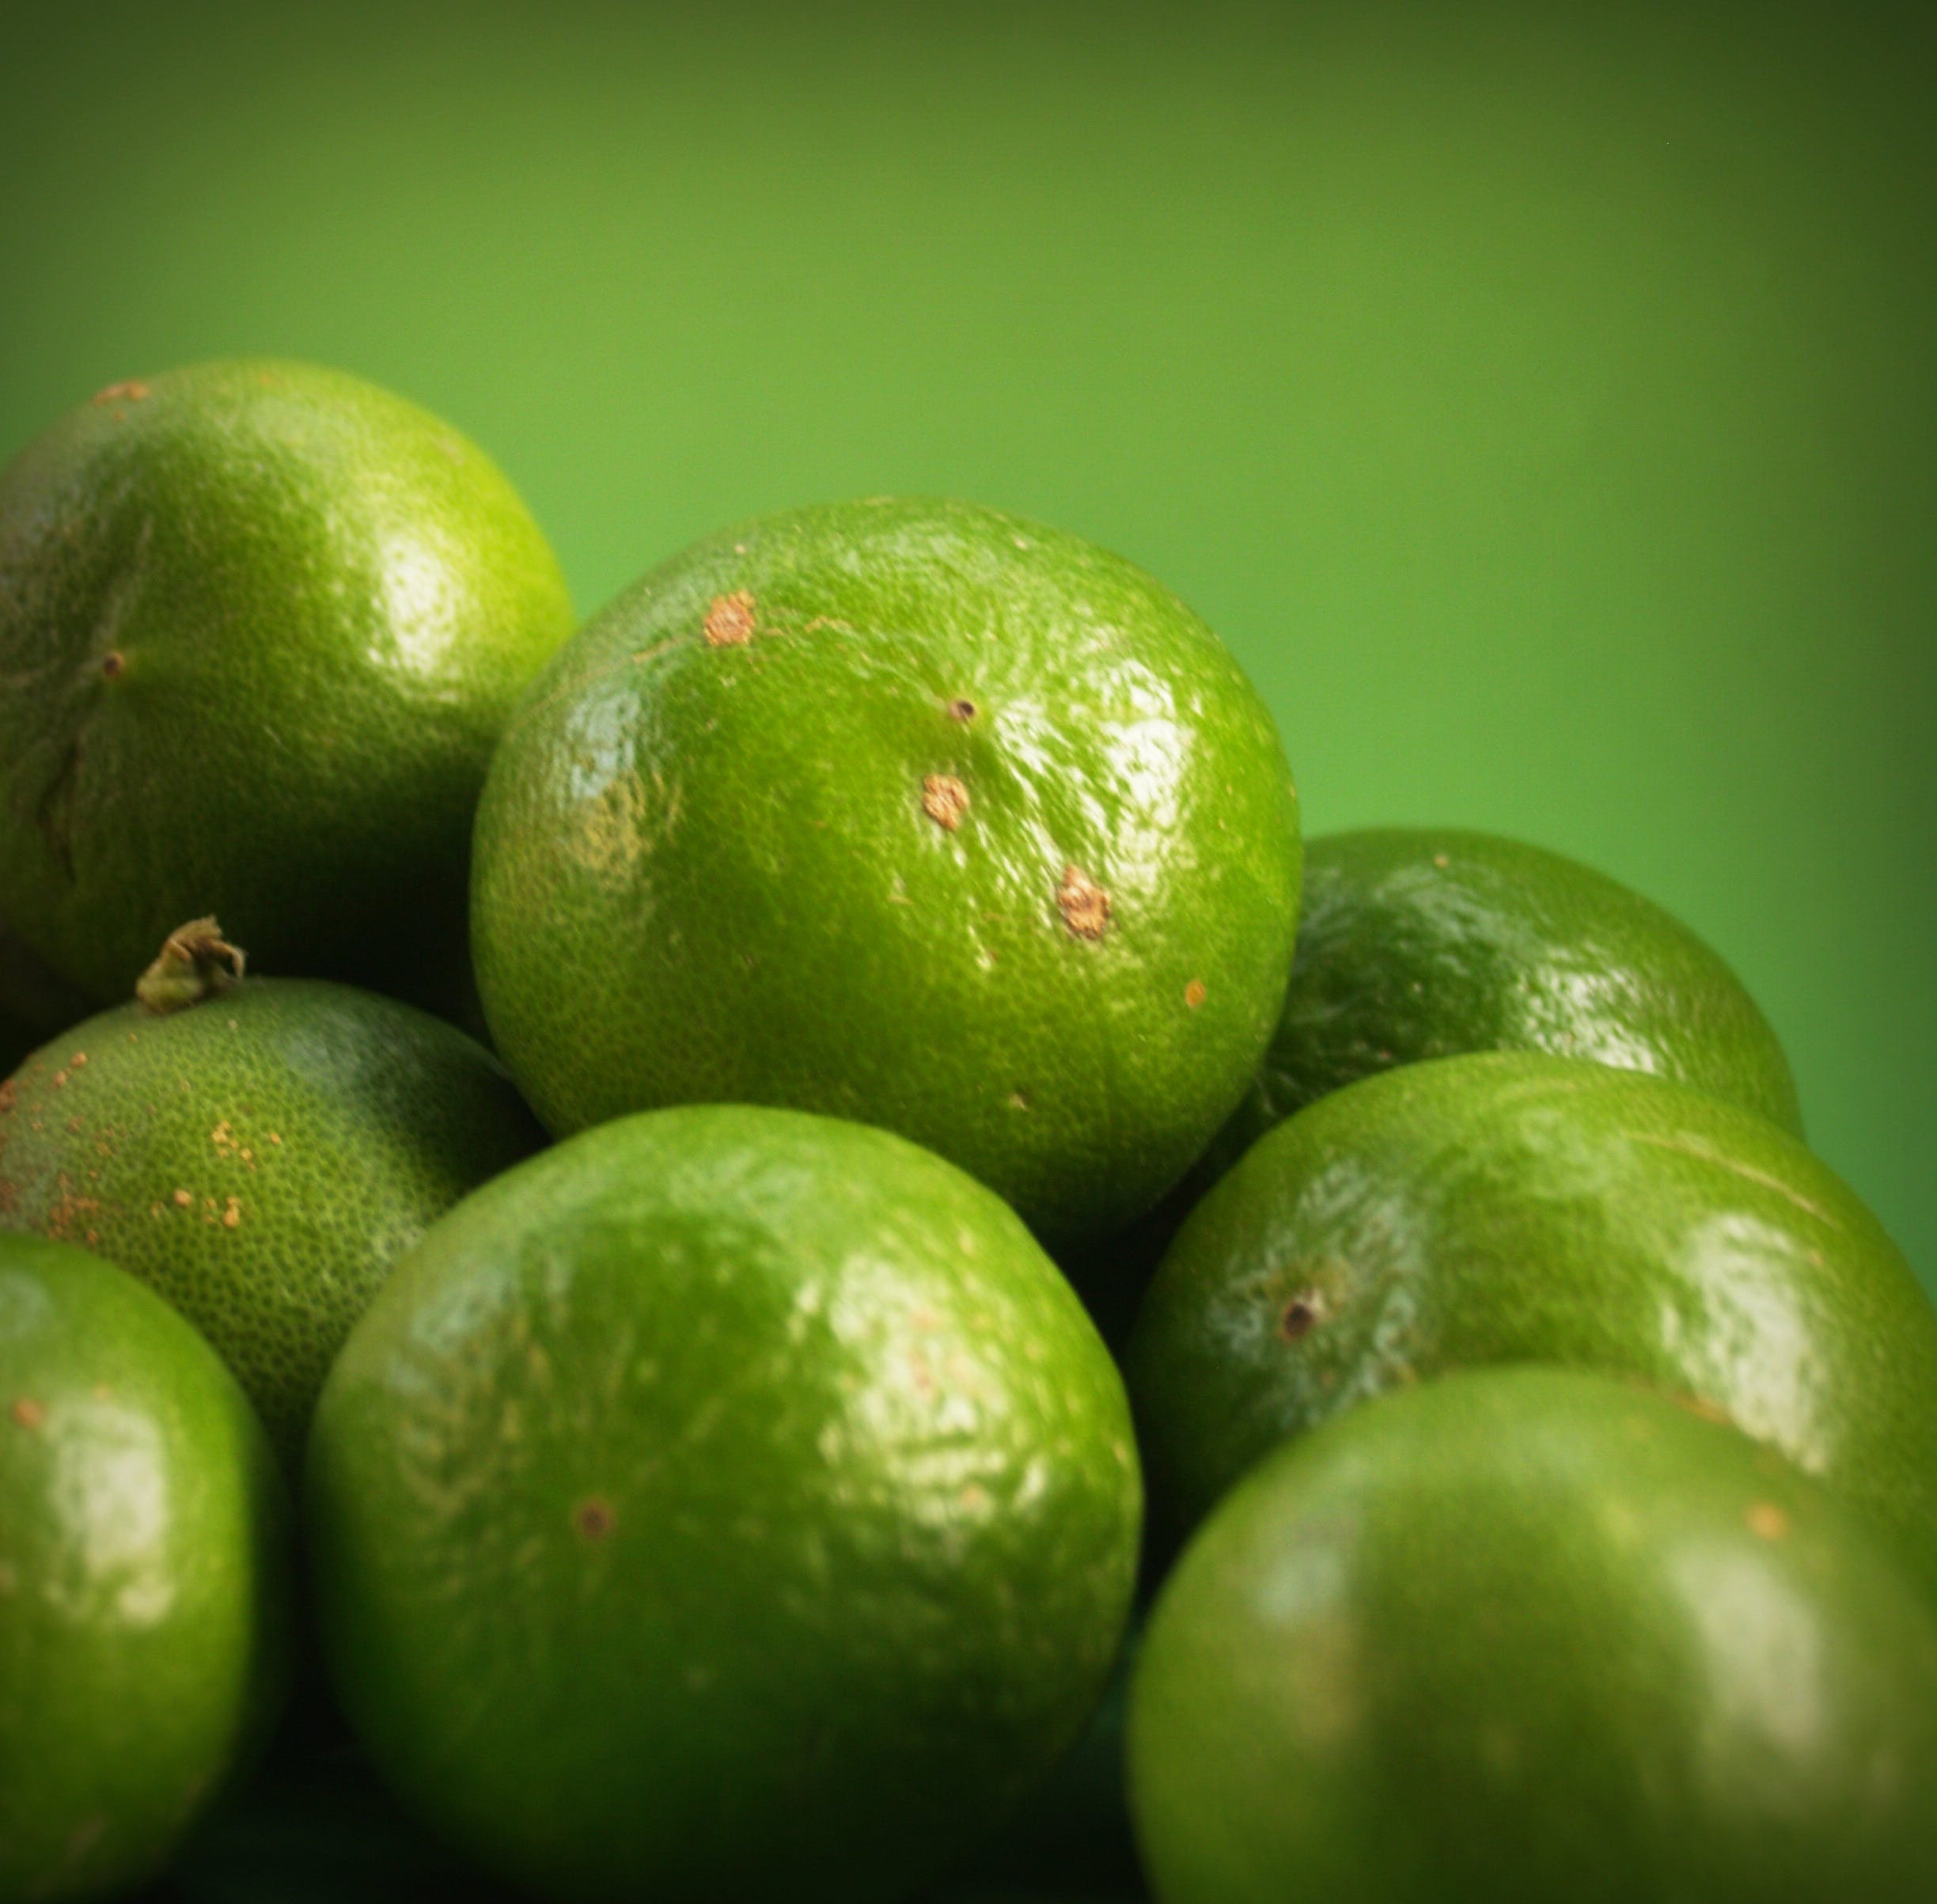 Closeup Photography of Limes